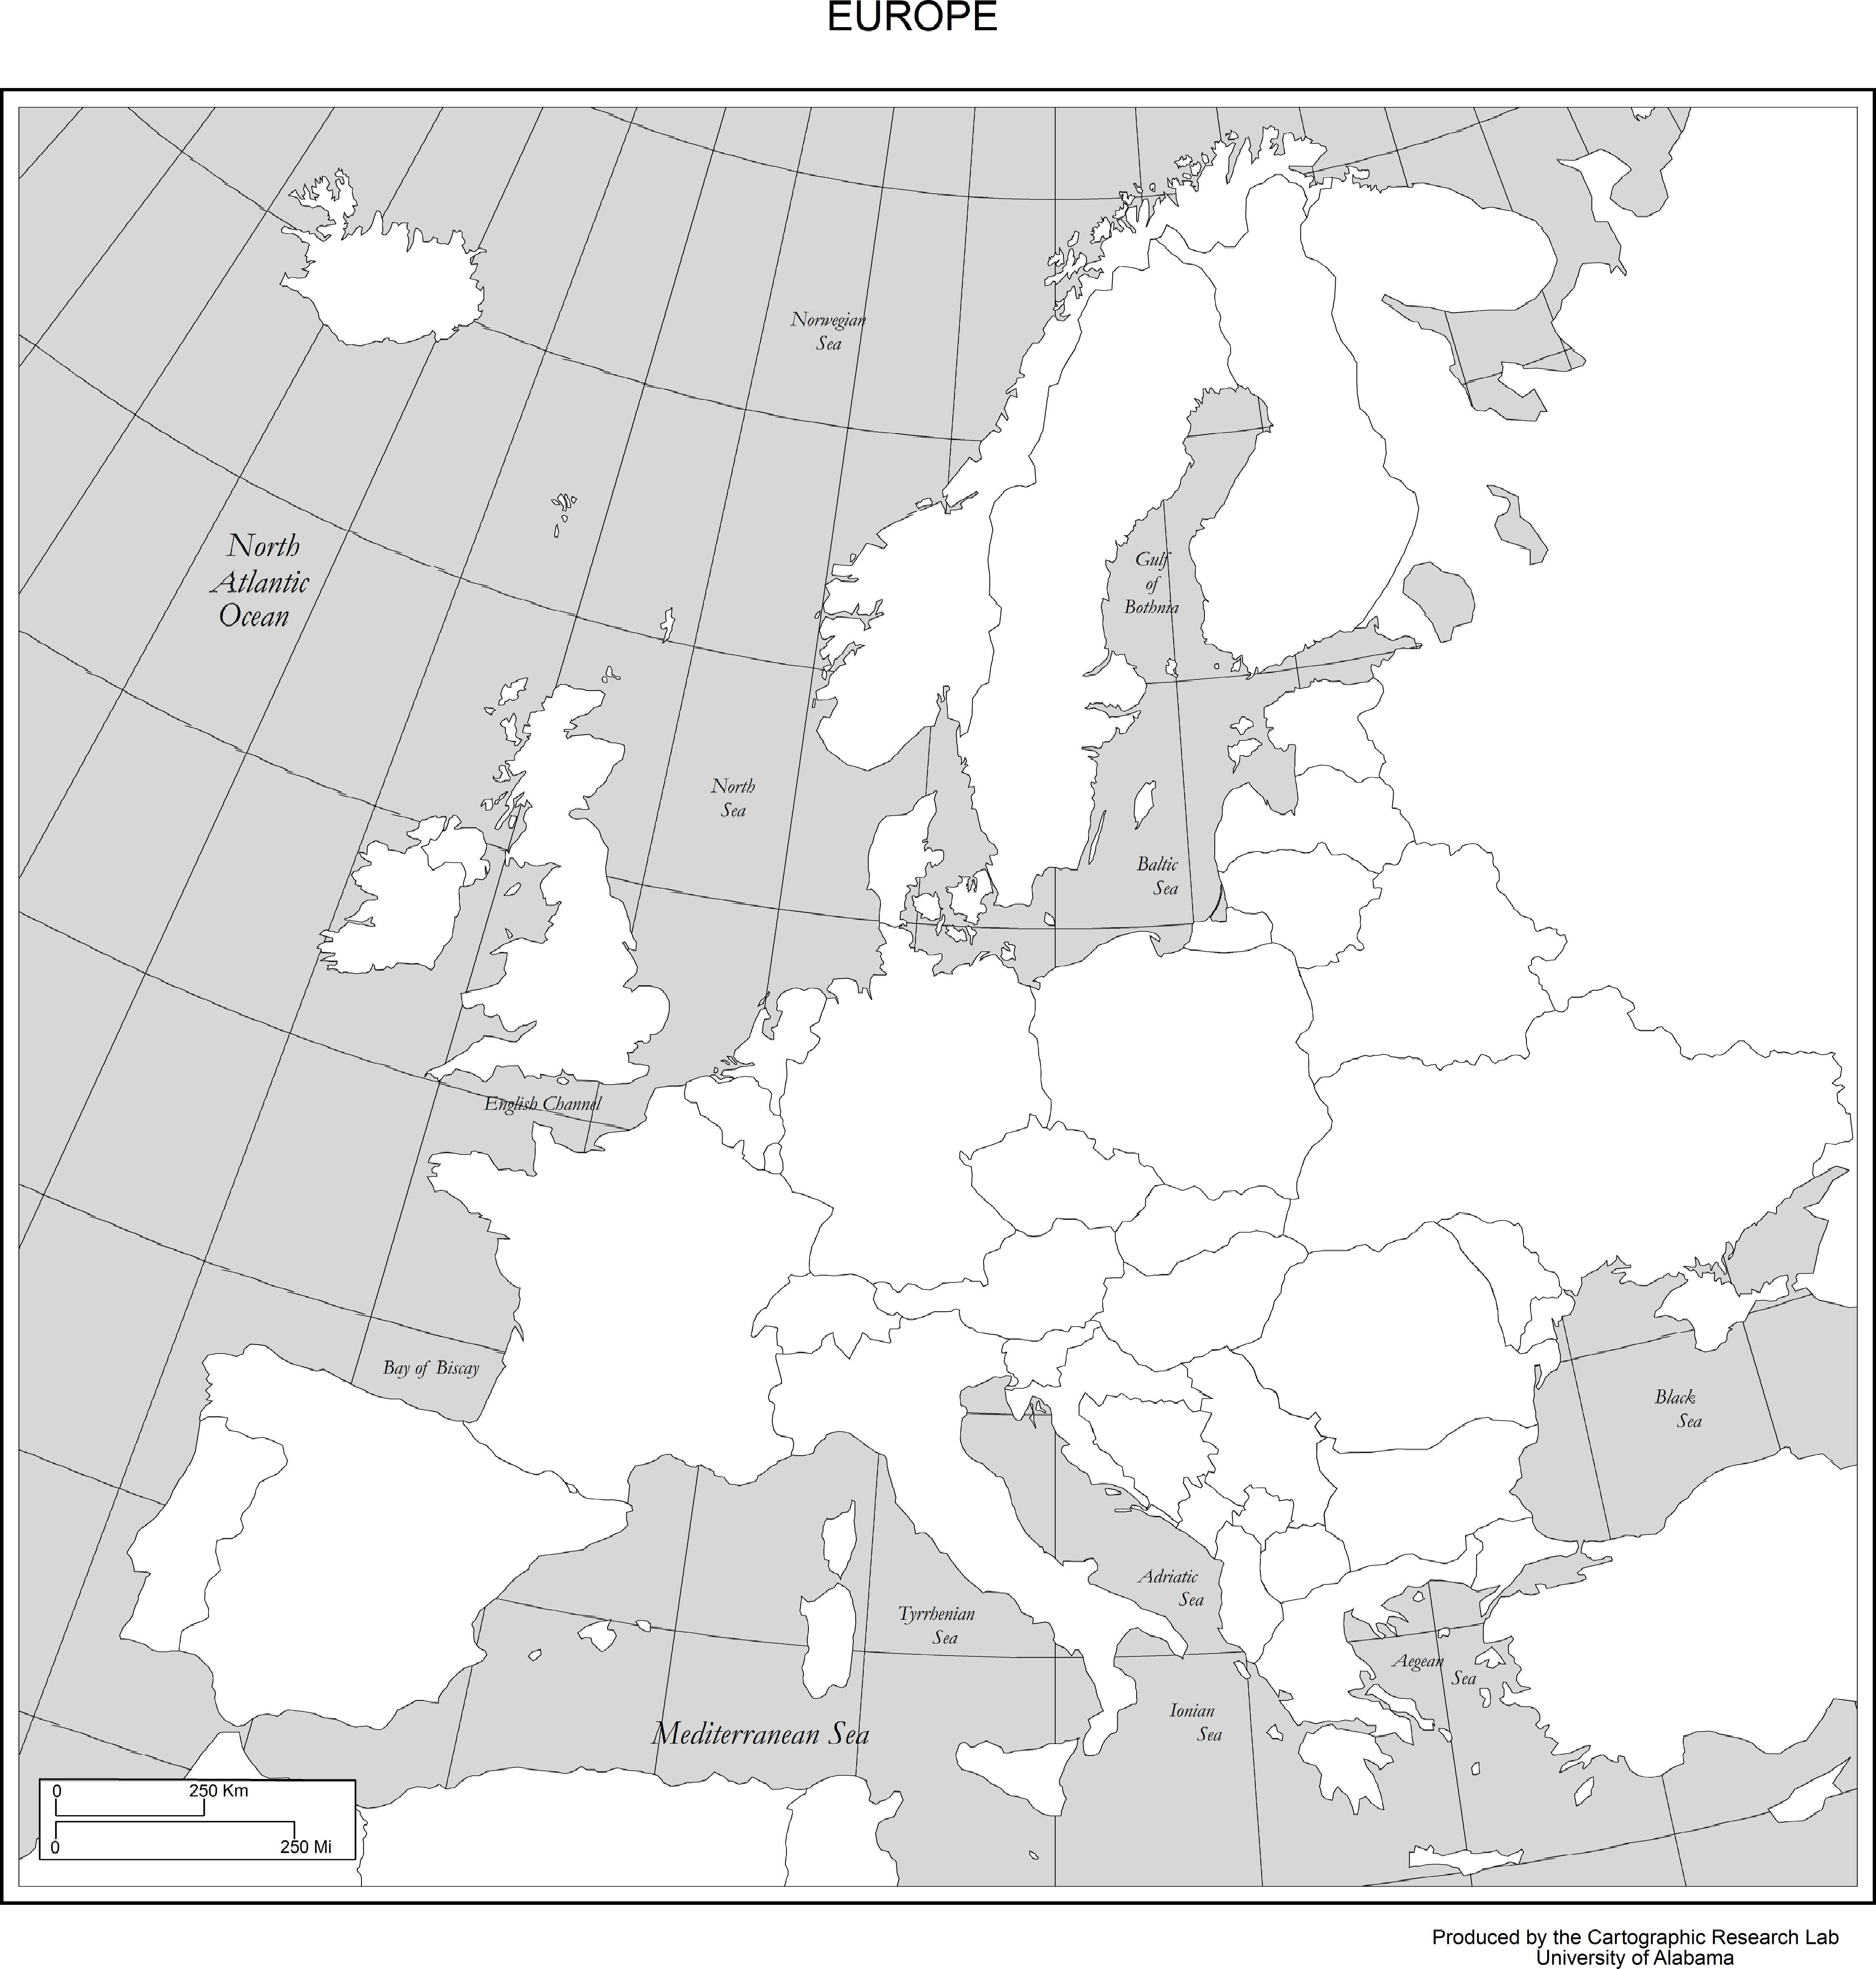 Map Of Europe Drawing at GetDrawings.com | Free for personal ... Pdf Blank Map Of East Africa on south america map blank pdf, canada map blank pdf, united states map blank pdf, eastern hemisphere map blank pdf, middle east map blank pdf, map of europe blank pdf,